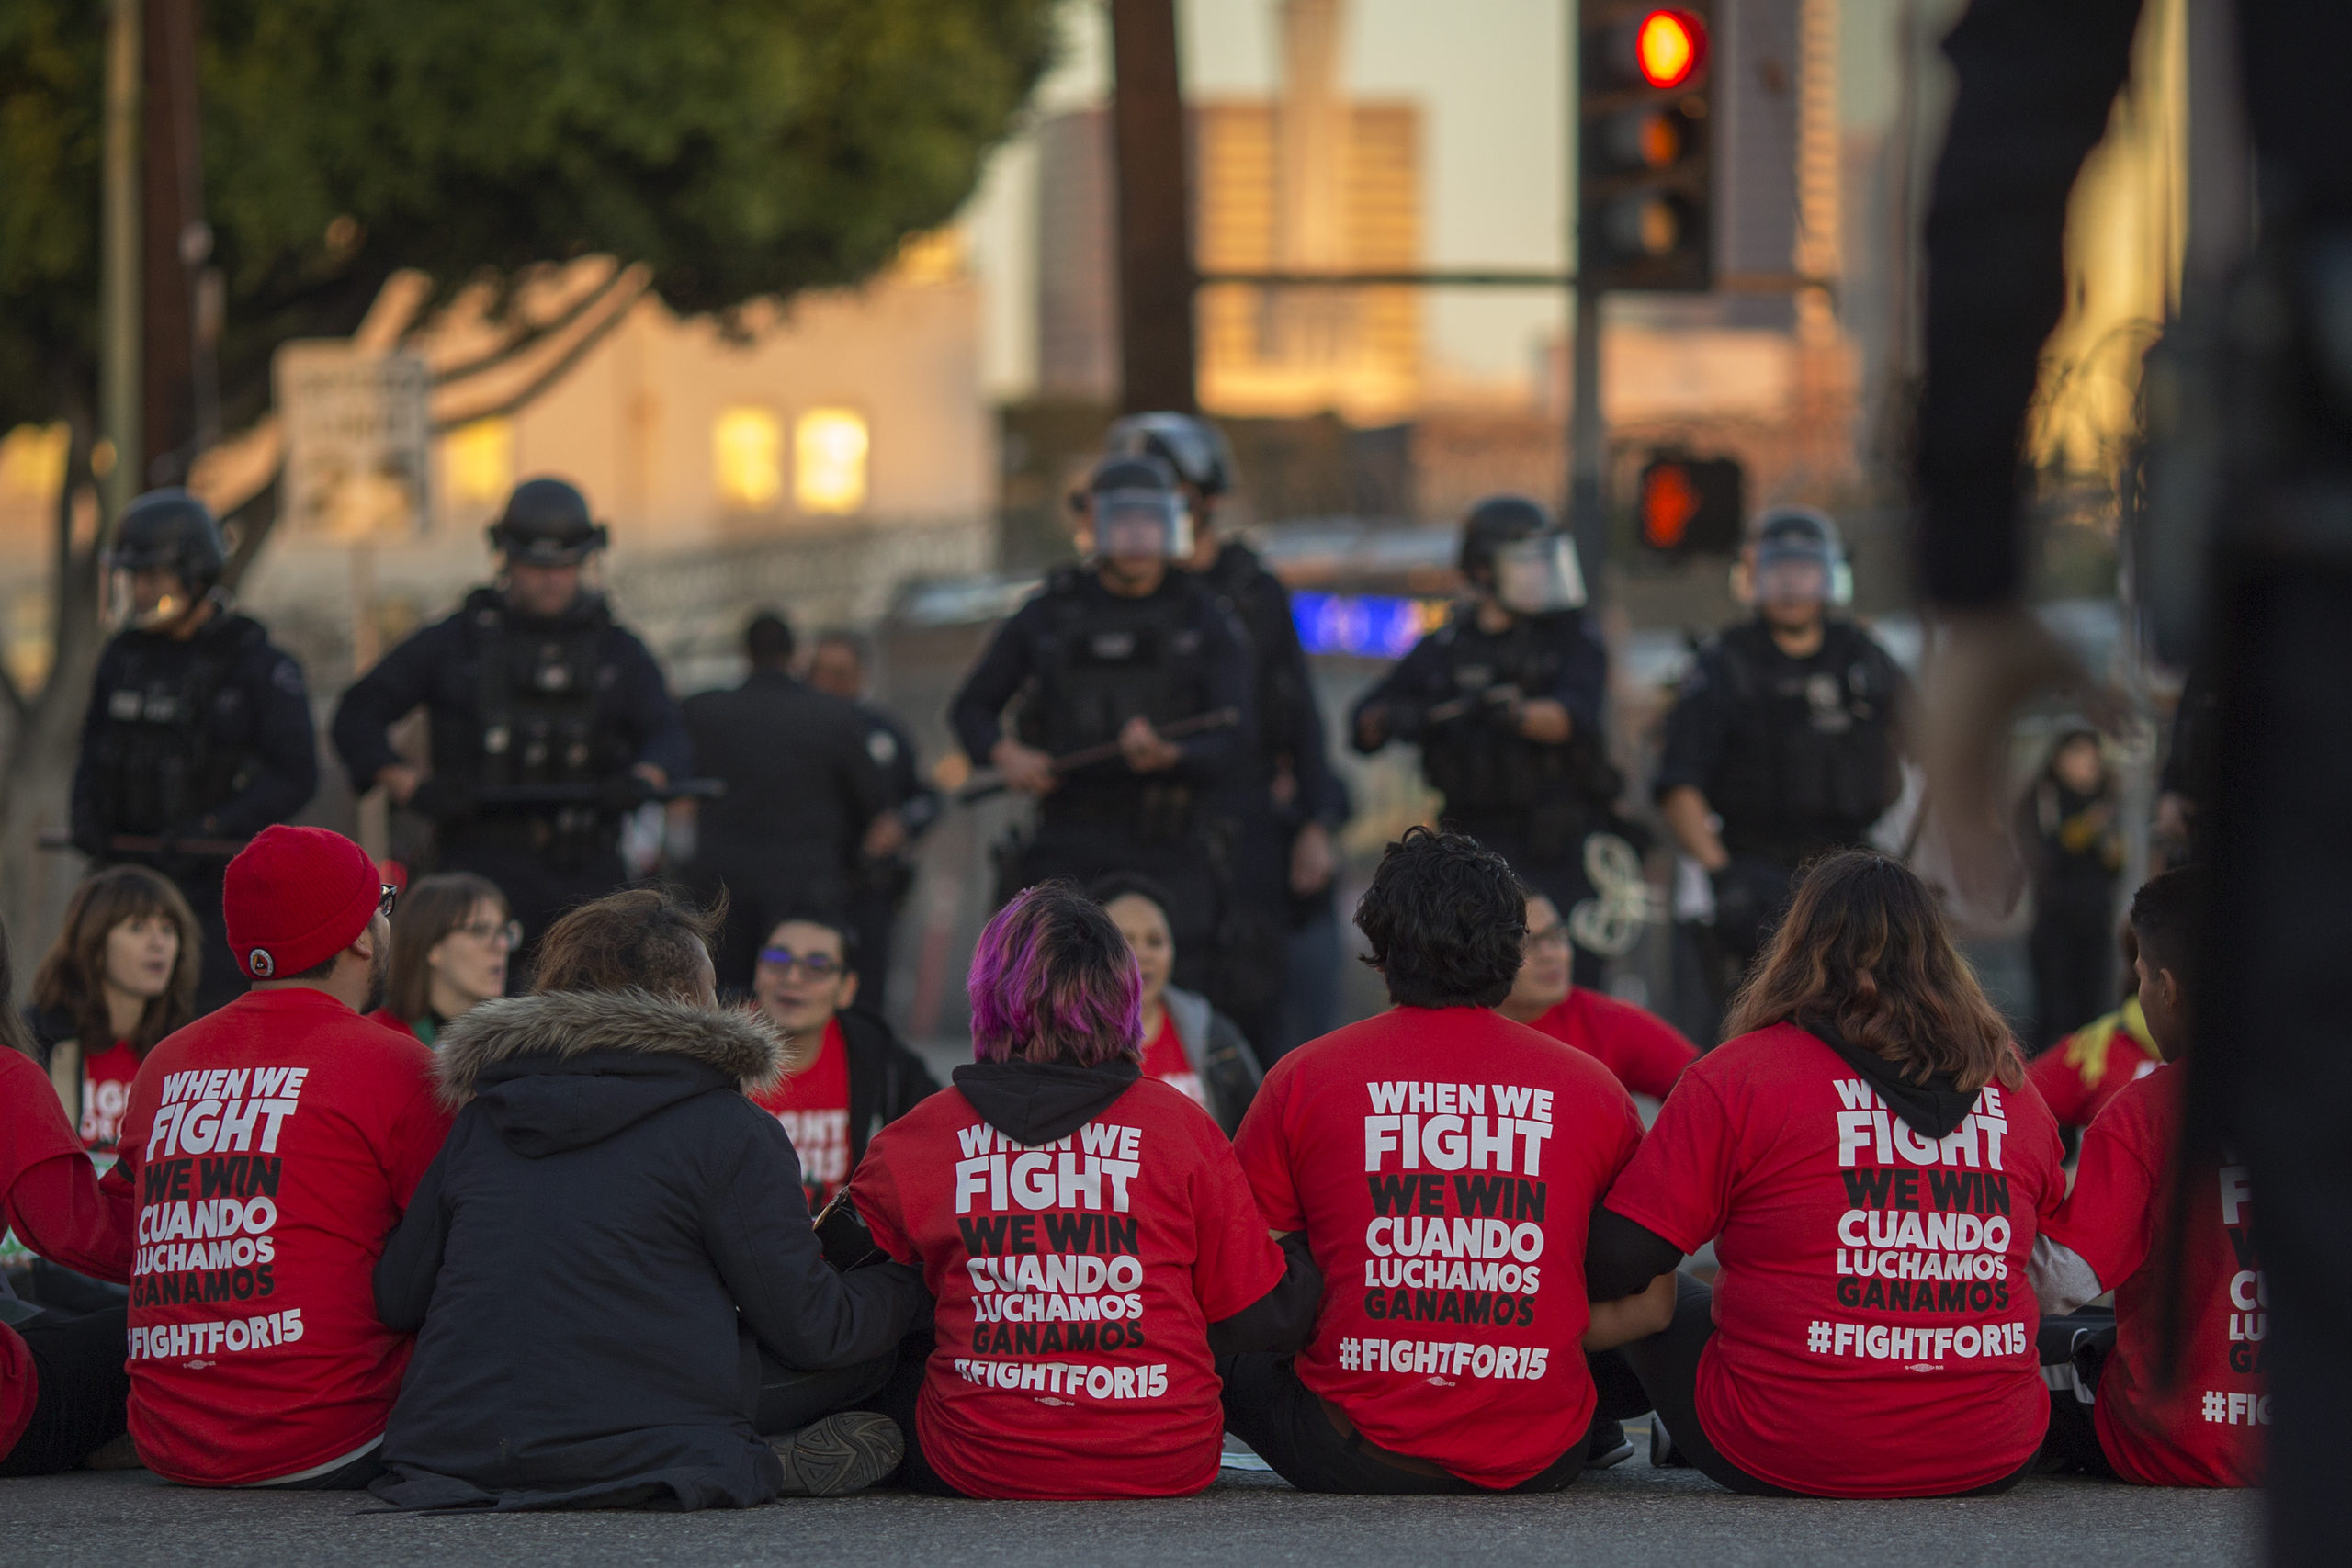 LOS ANGELES, CA - NOVEMBER 29: Police surround striking McDonald's restaurant employees sitting in an intersection after walking off the job to demand a $15 per hour wage and union rights during nationwide 'Fight for $15 Day of Disruption' protests on November 29, 2016 in Los Angeles, California. Police made 40 peaceful arrests. Protest rallies are expected in nearly 20 airports and outside restaurants in numerous cities, according to organizers. (Photo by David McNew/Getty Images)